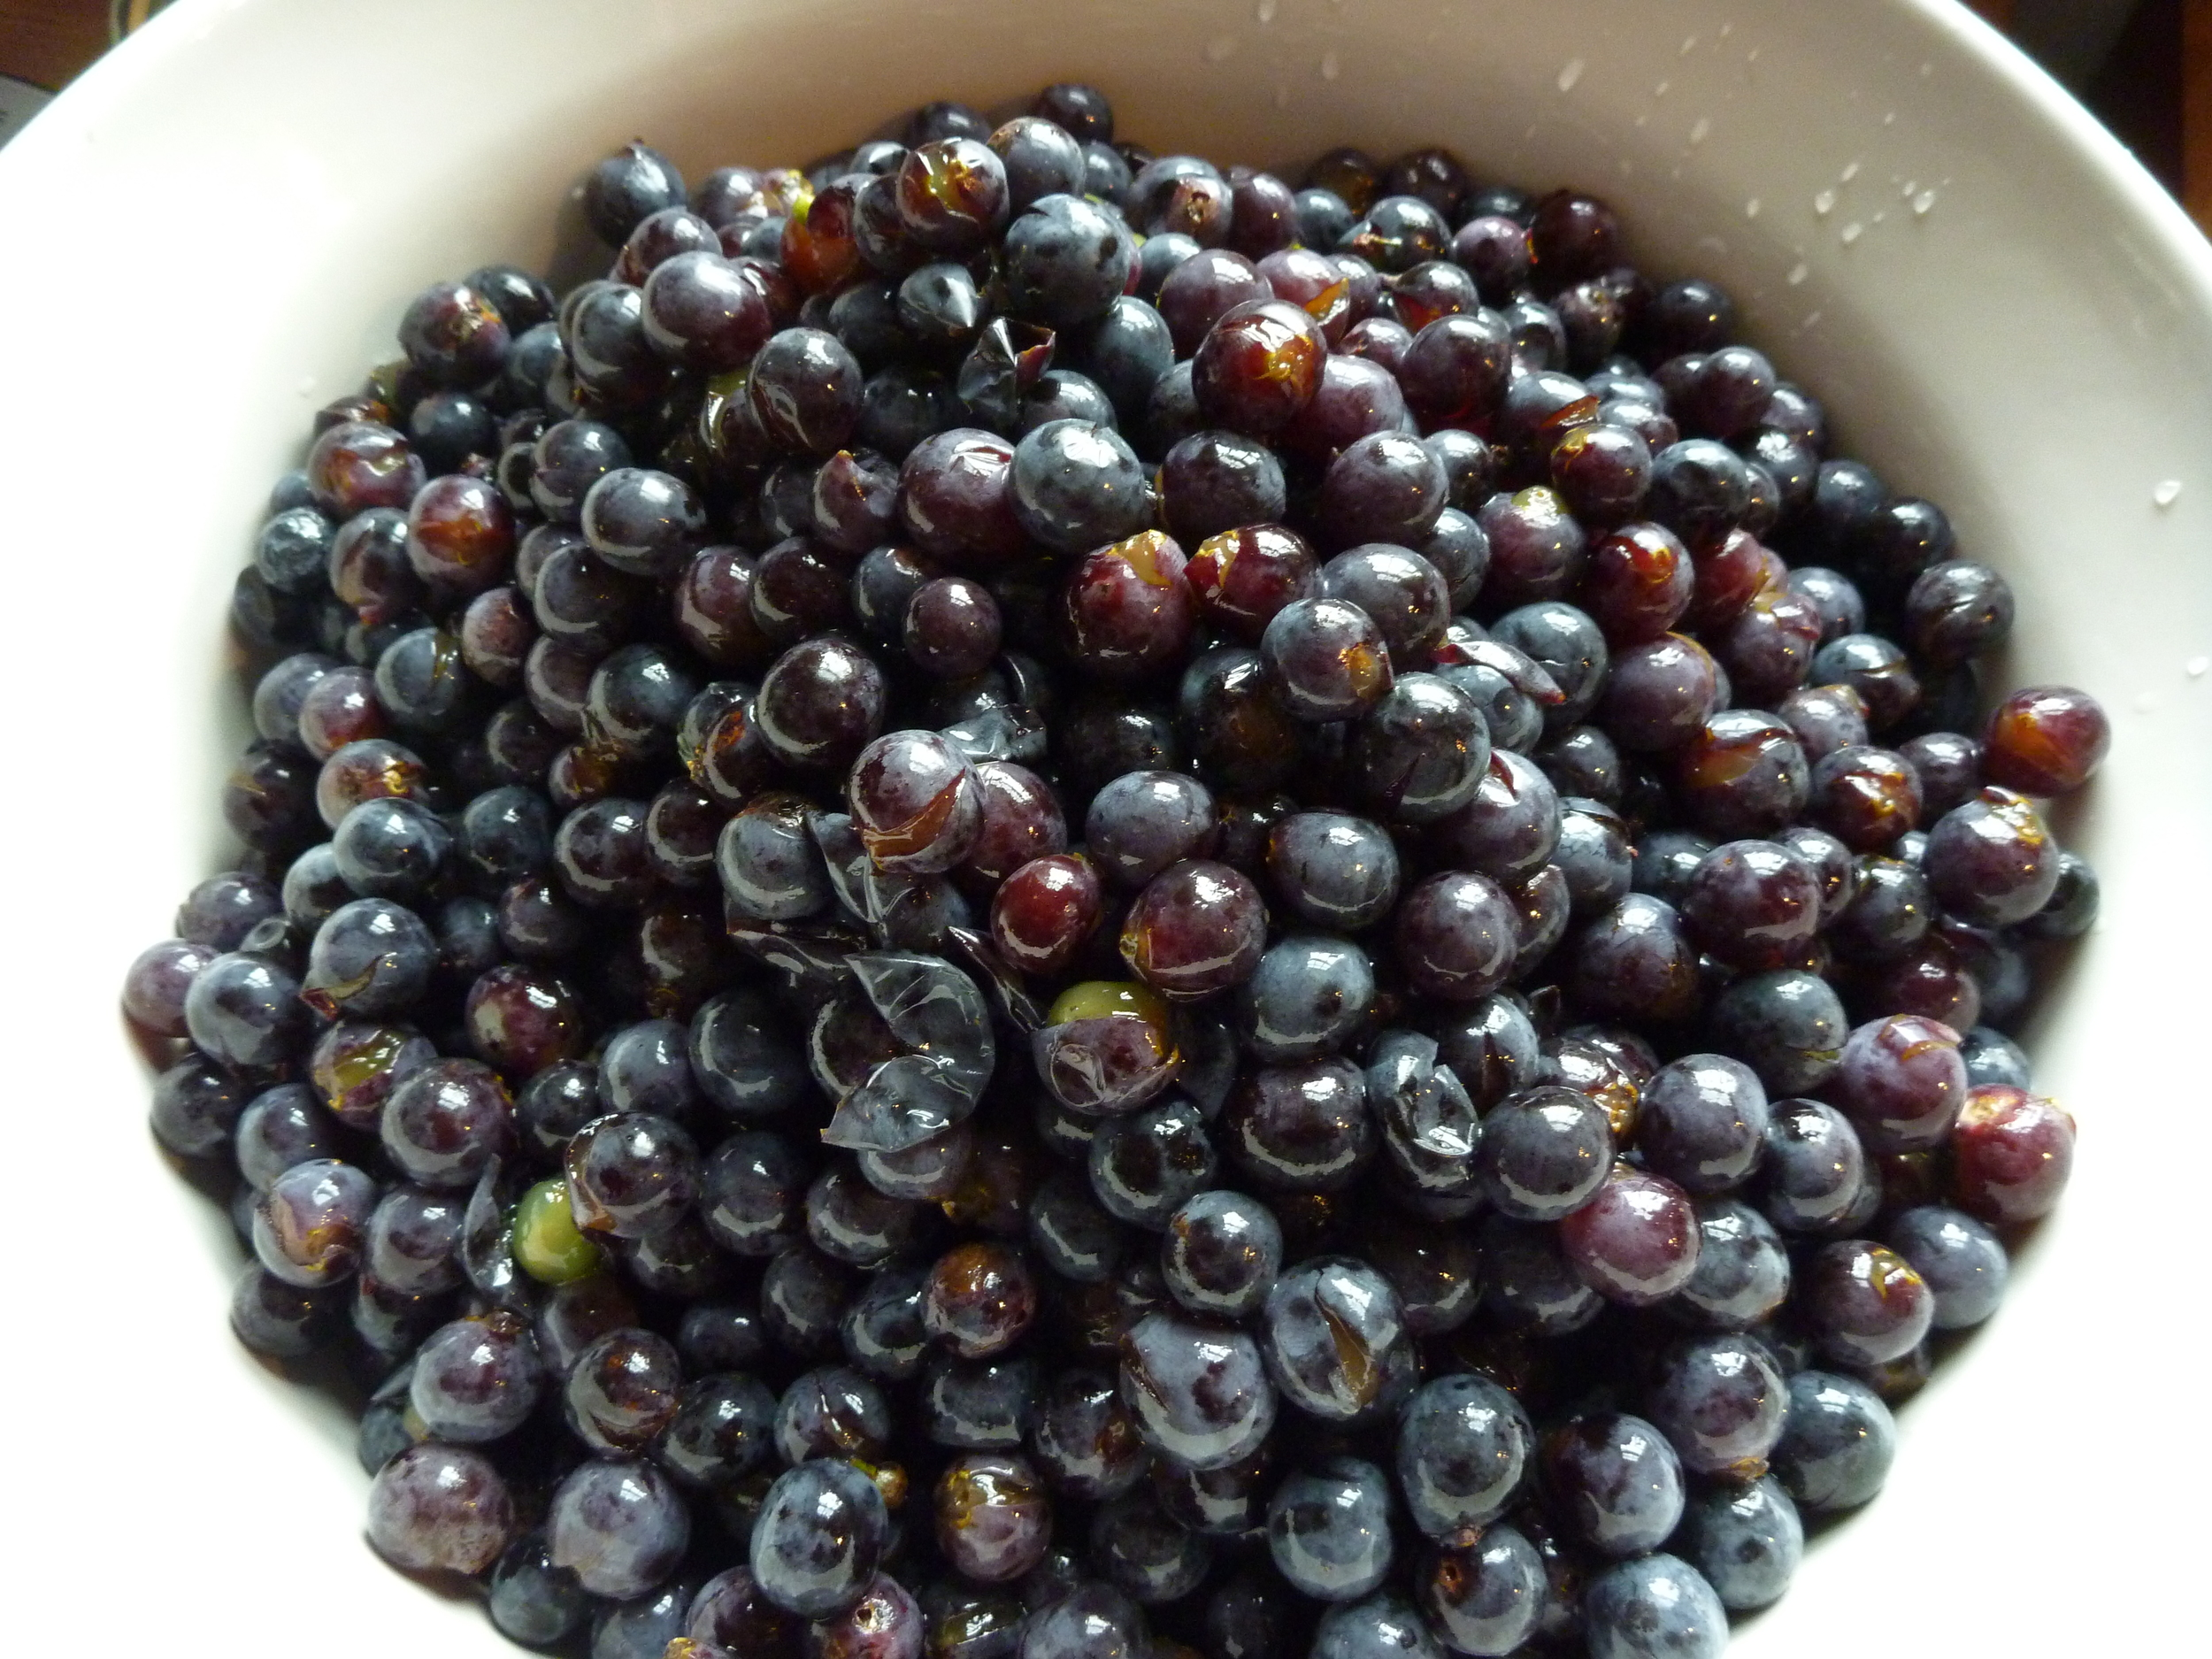 Grape_Jam_-_Concord_Grapes_washed.jpg